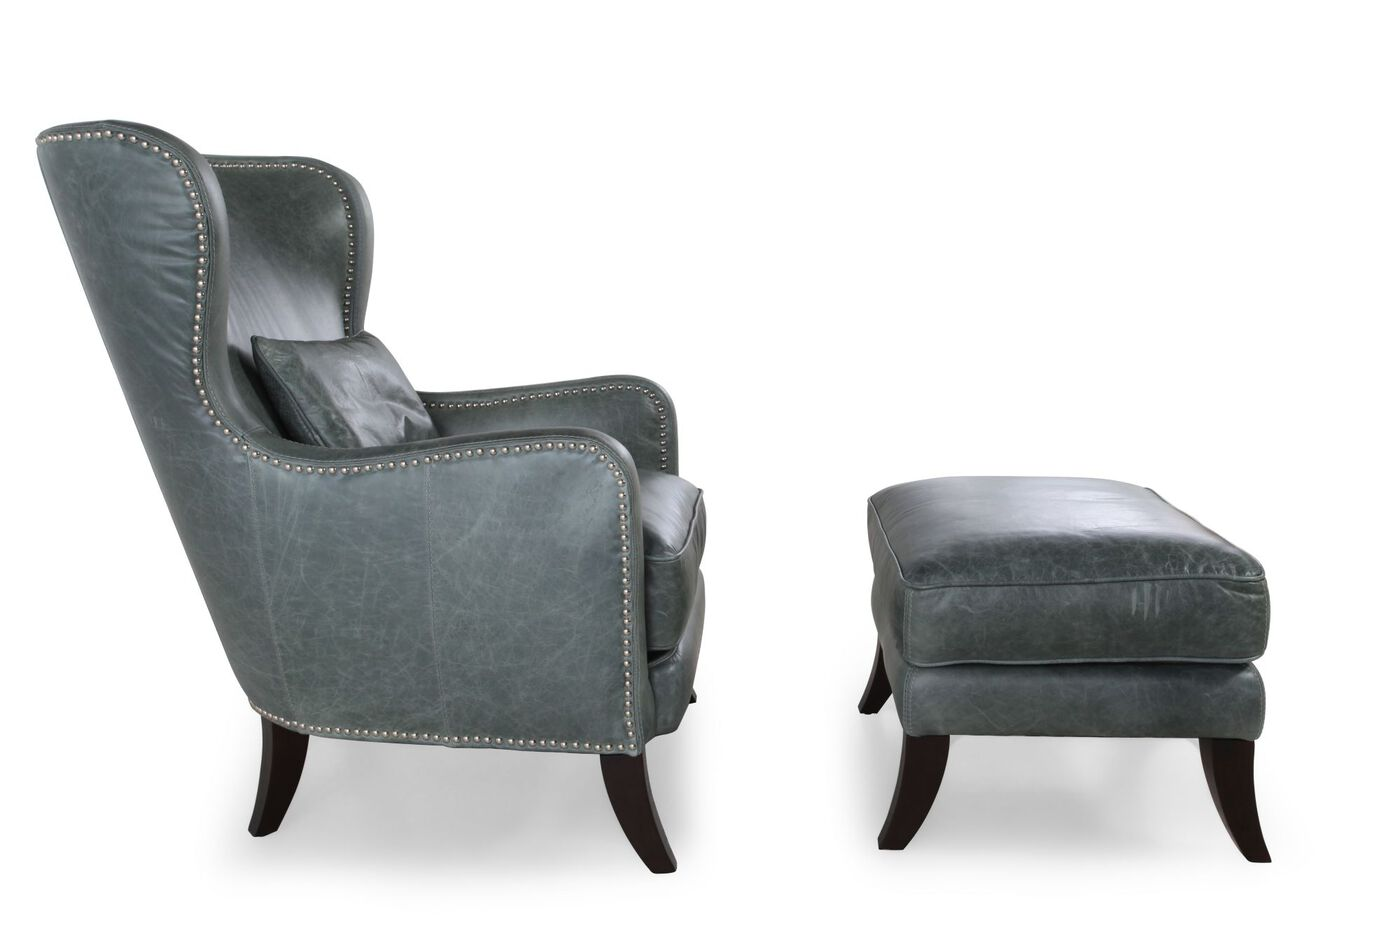 Leather Chair And Ottoman In Teal Mathis Brothers Furniture